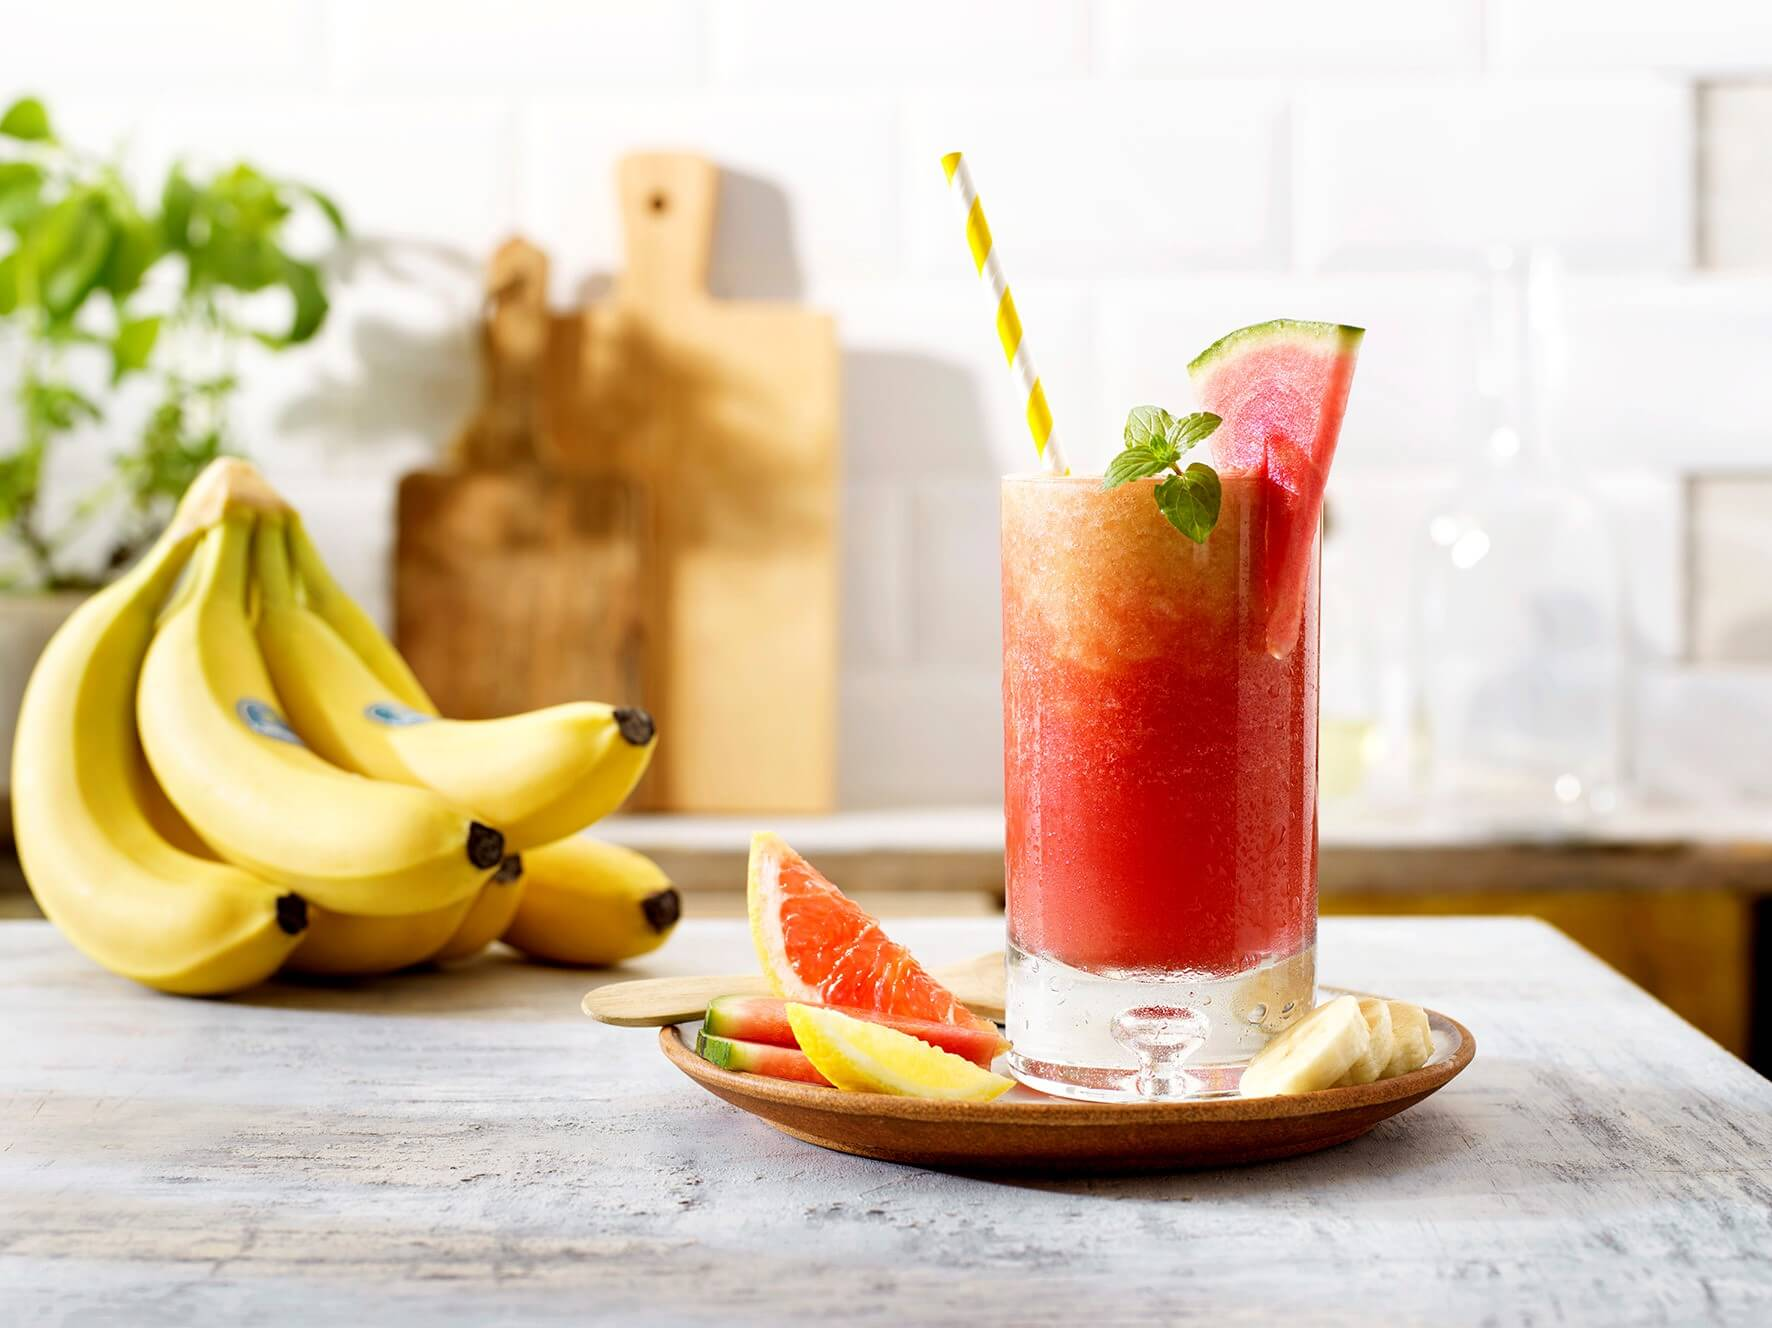 Pink Sunrise mocktail with Chiquita bananas and watermelon